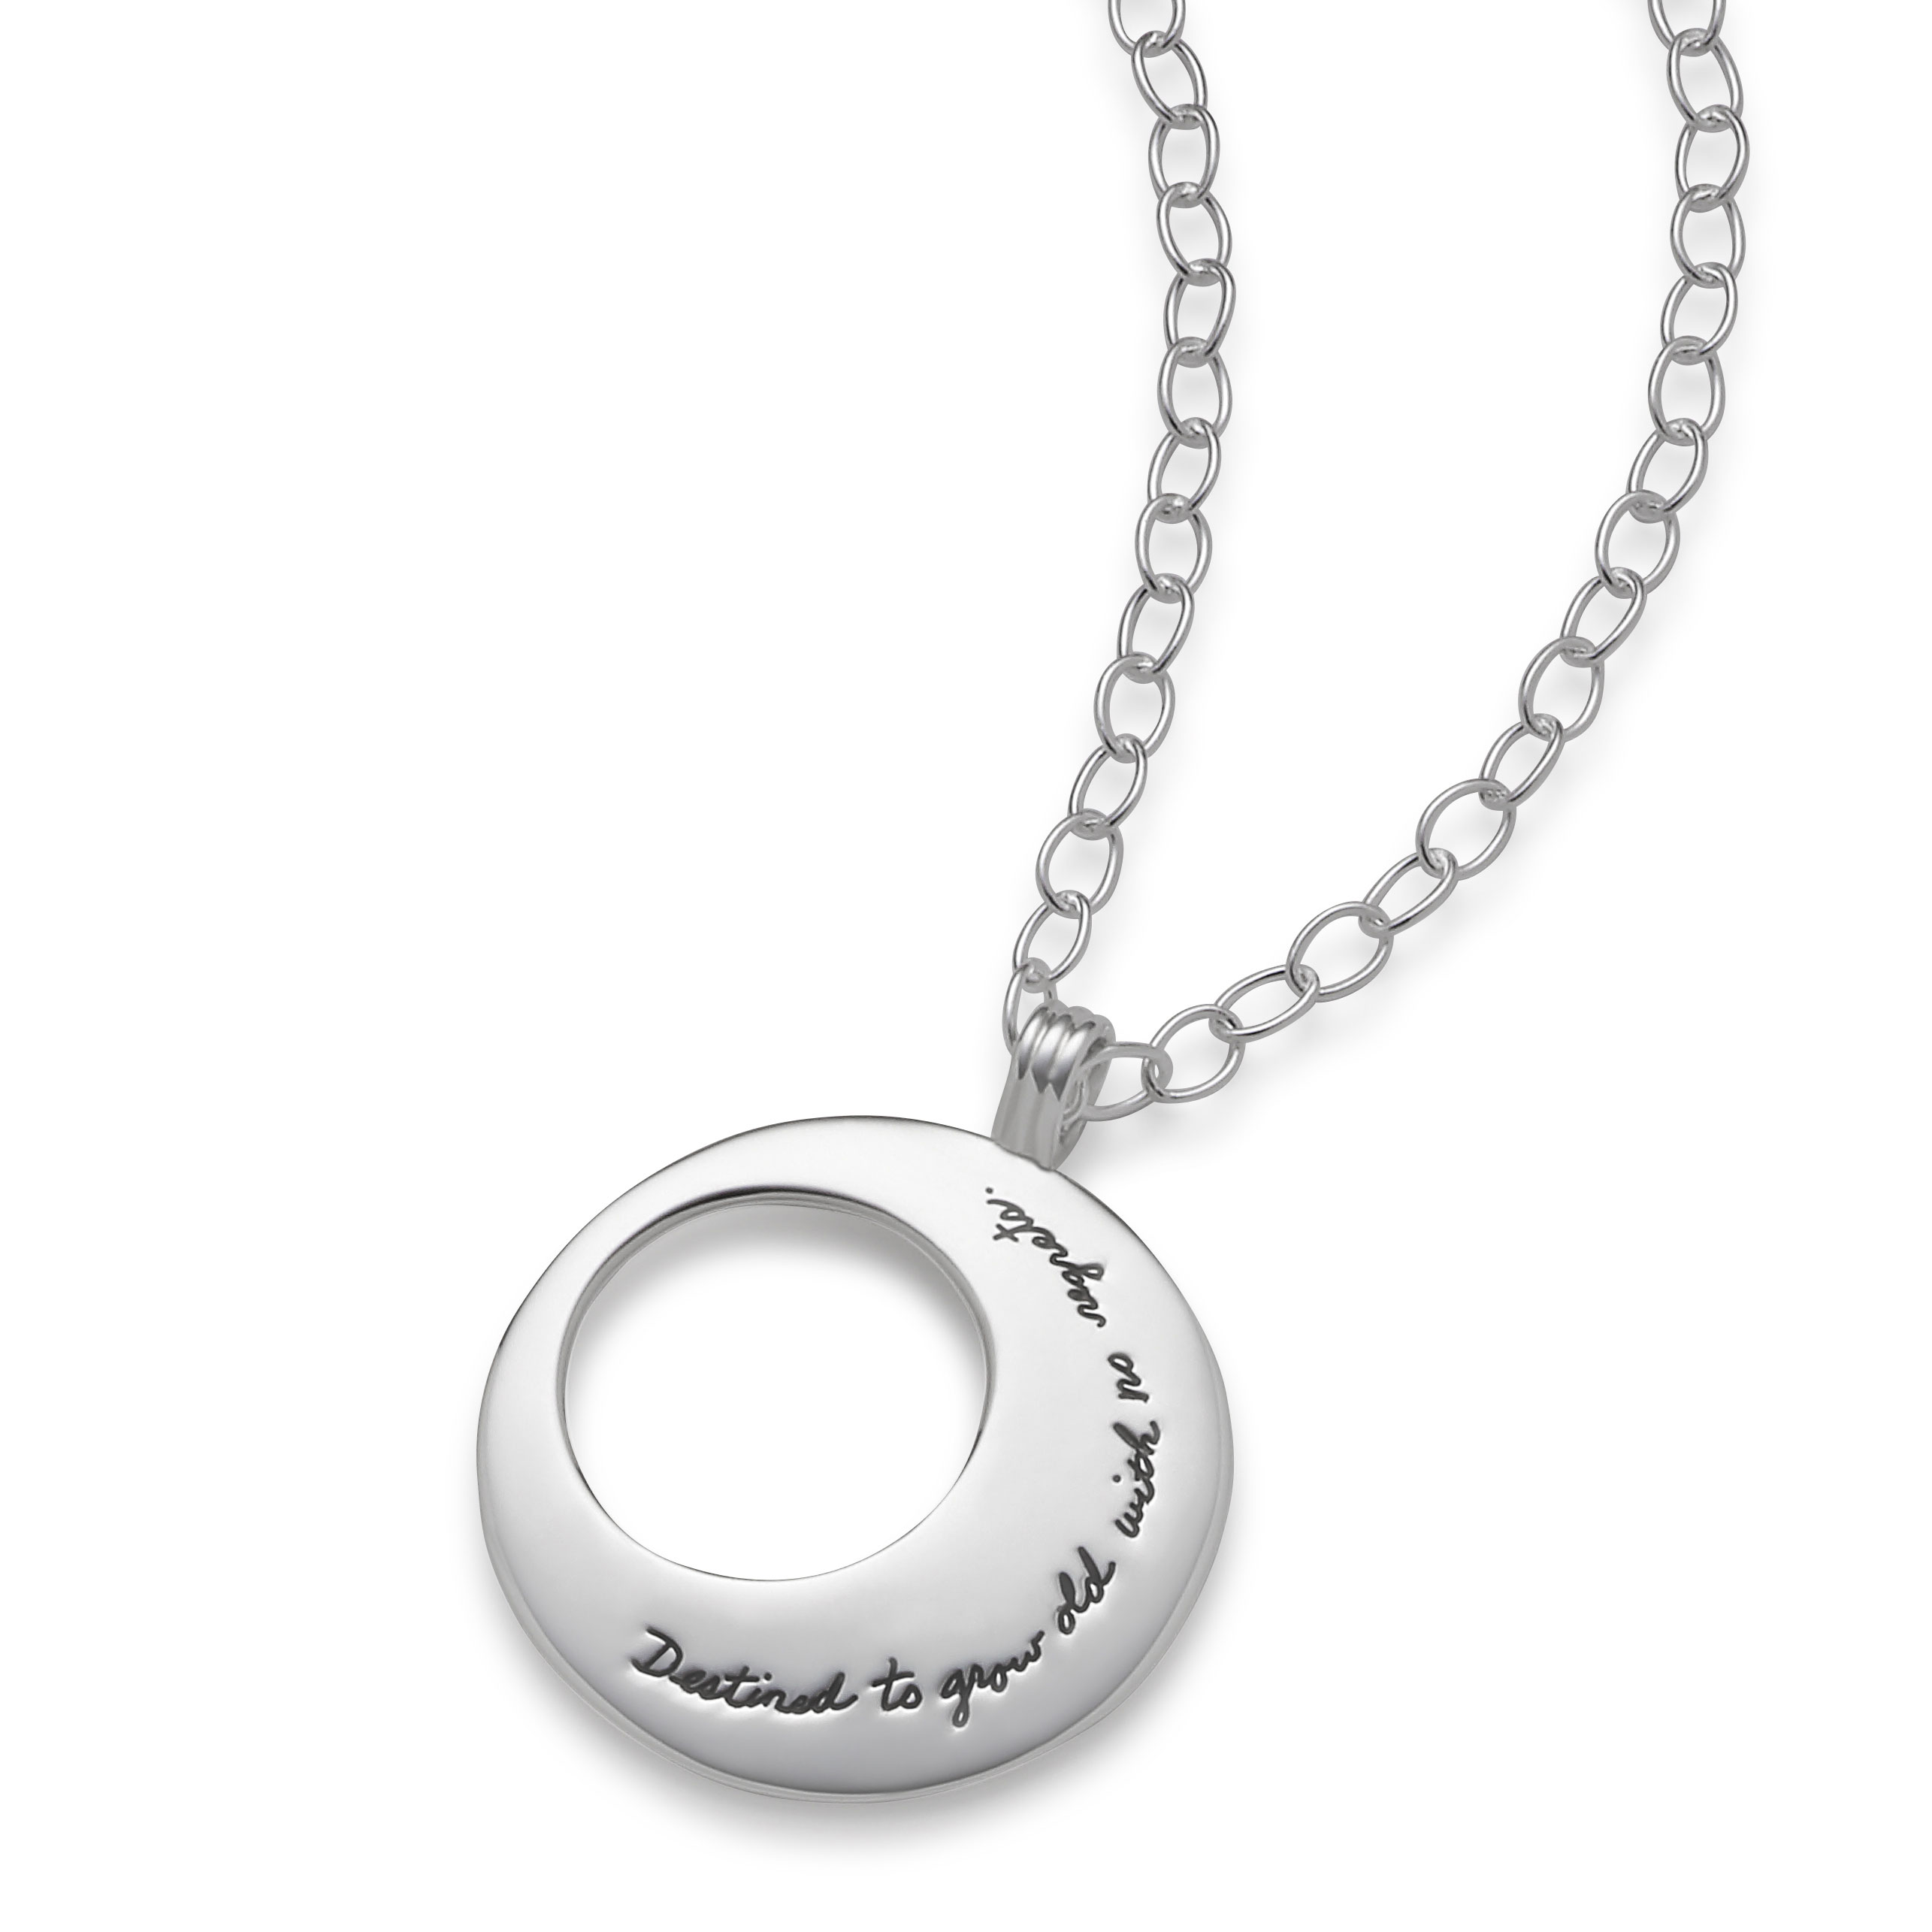 Inspirational eclipse necklace Circle shape with off center circle cutout on the left side. Quote on piece reads: Destined to grow old with no regrets.